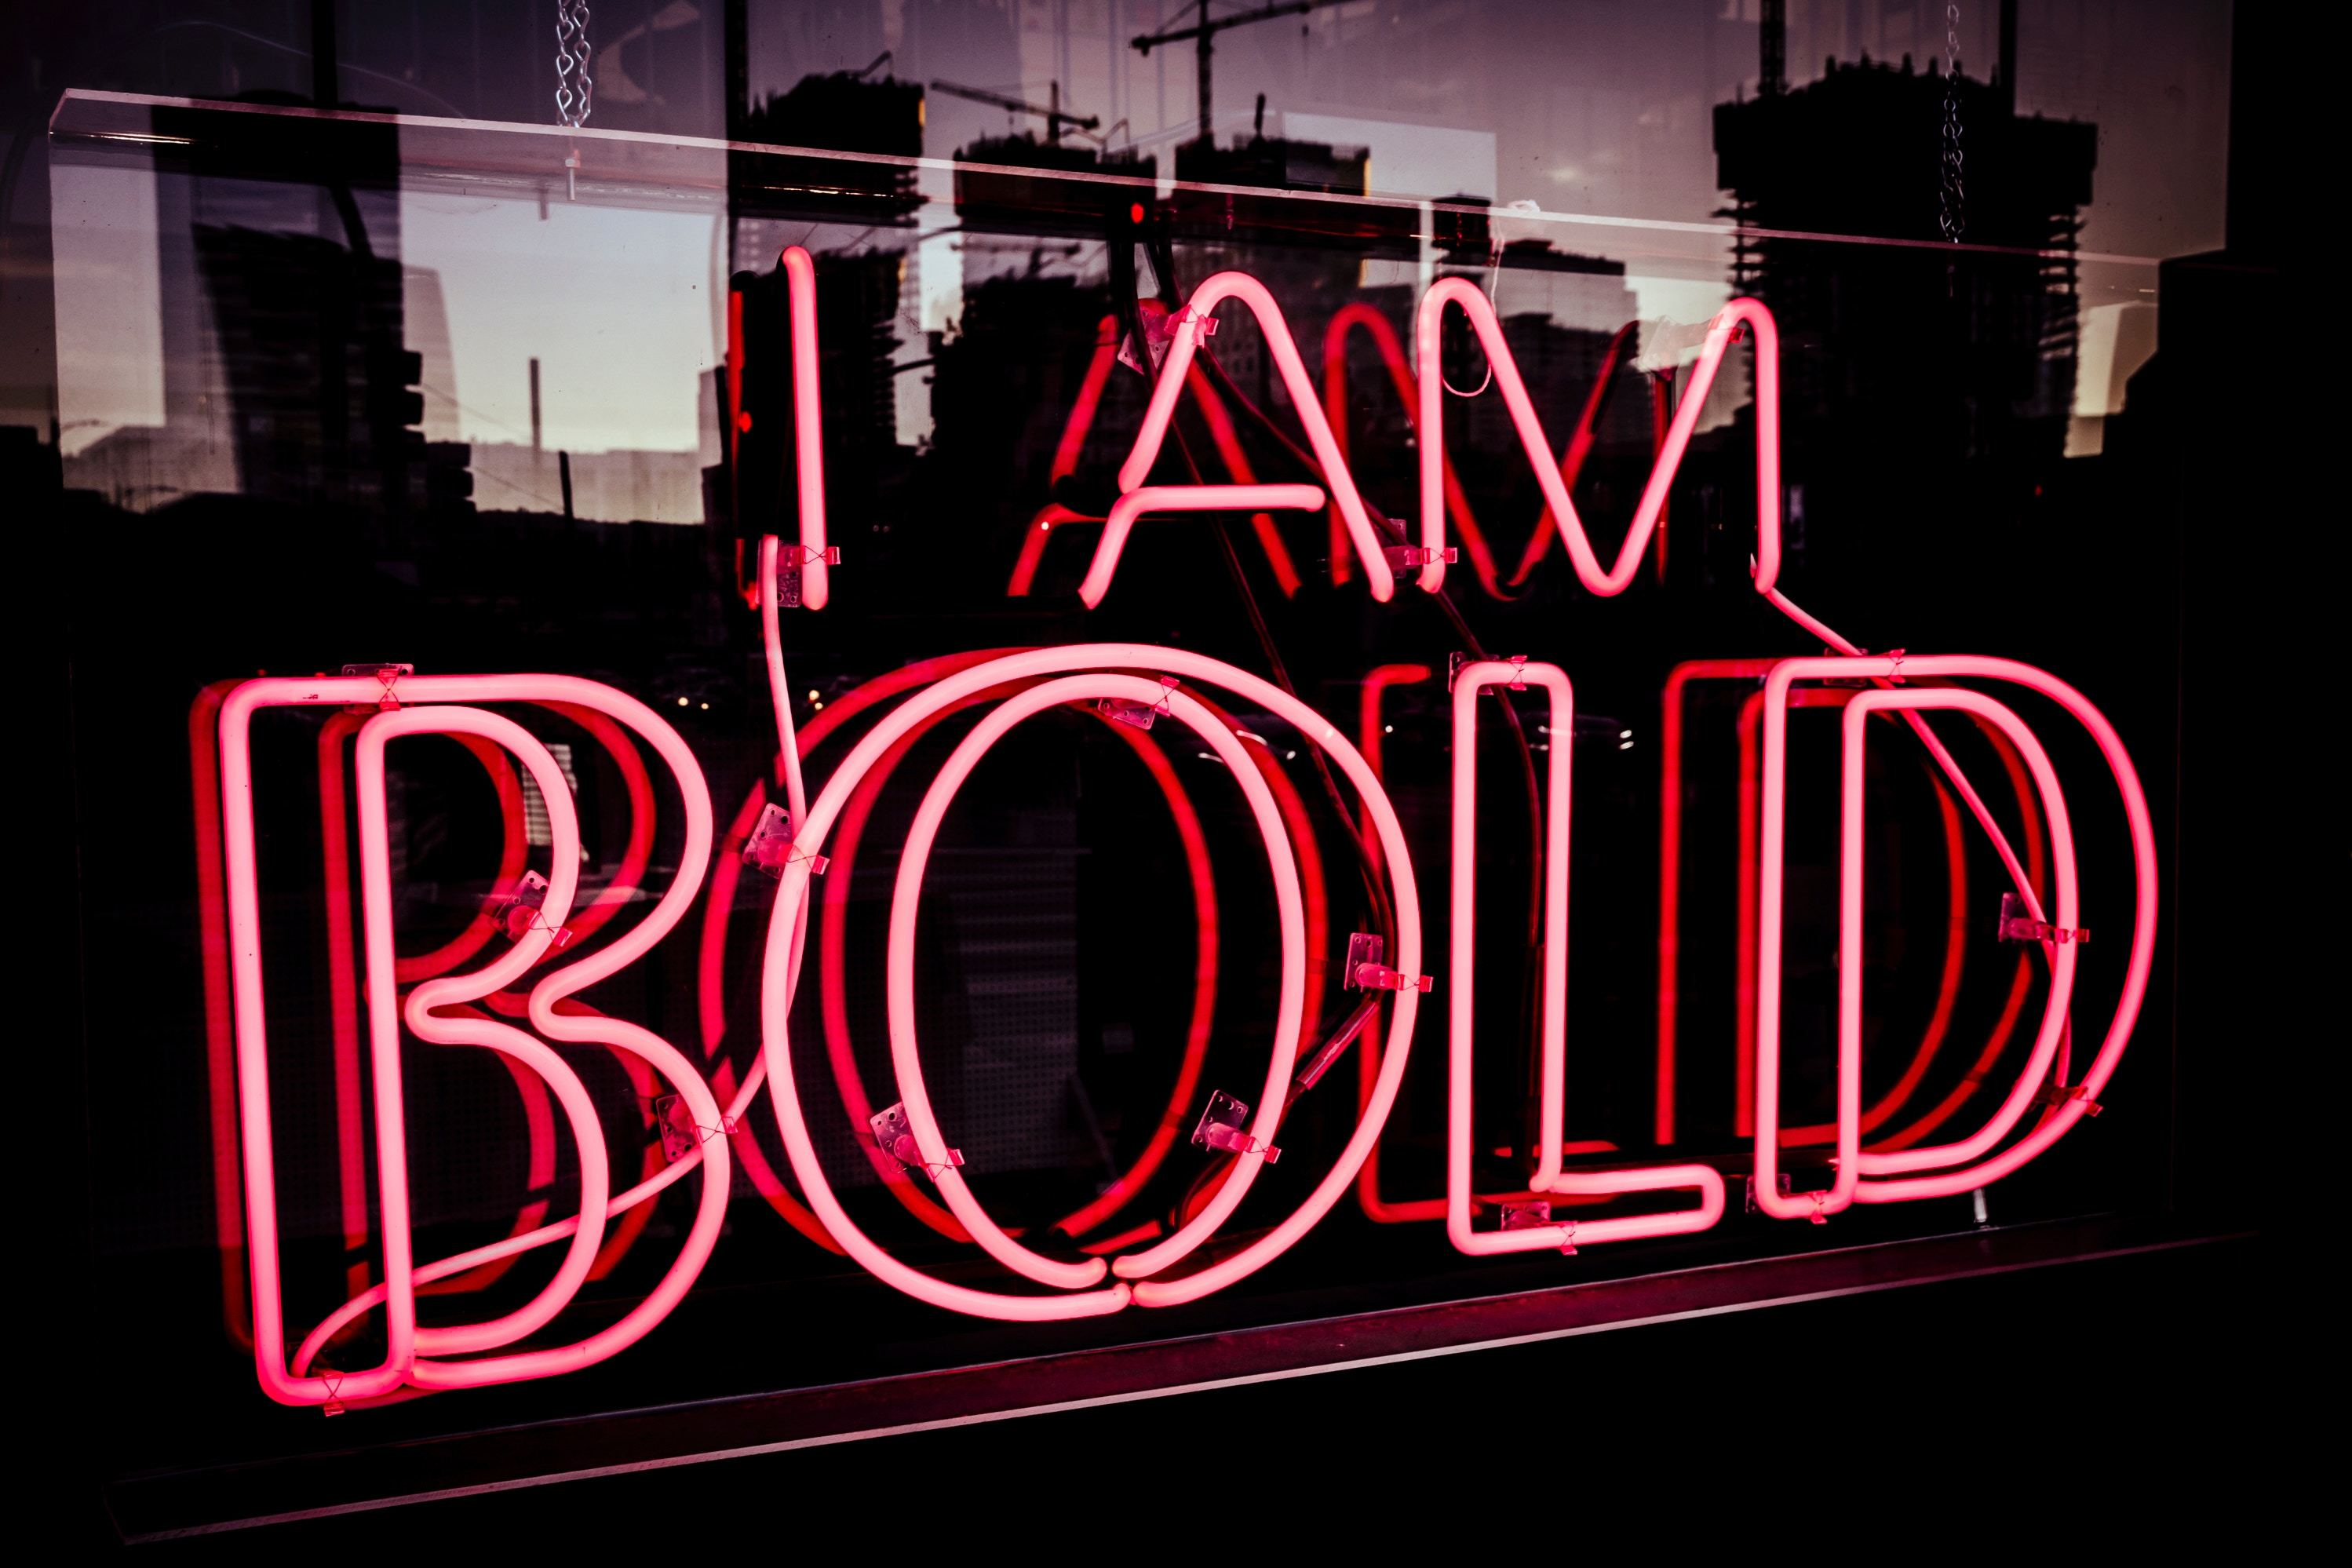 Neon sign with wording